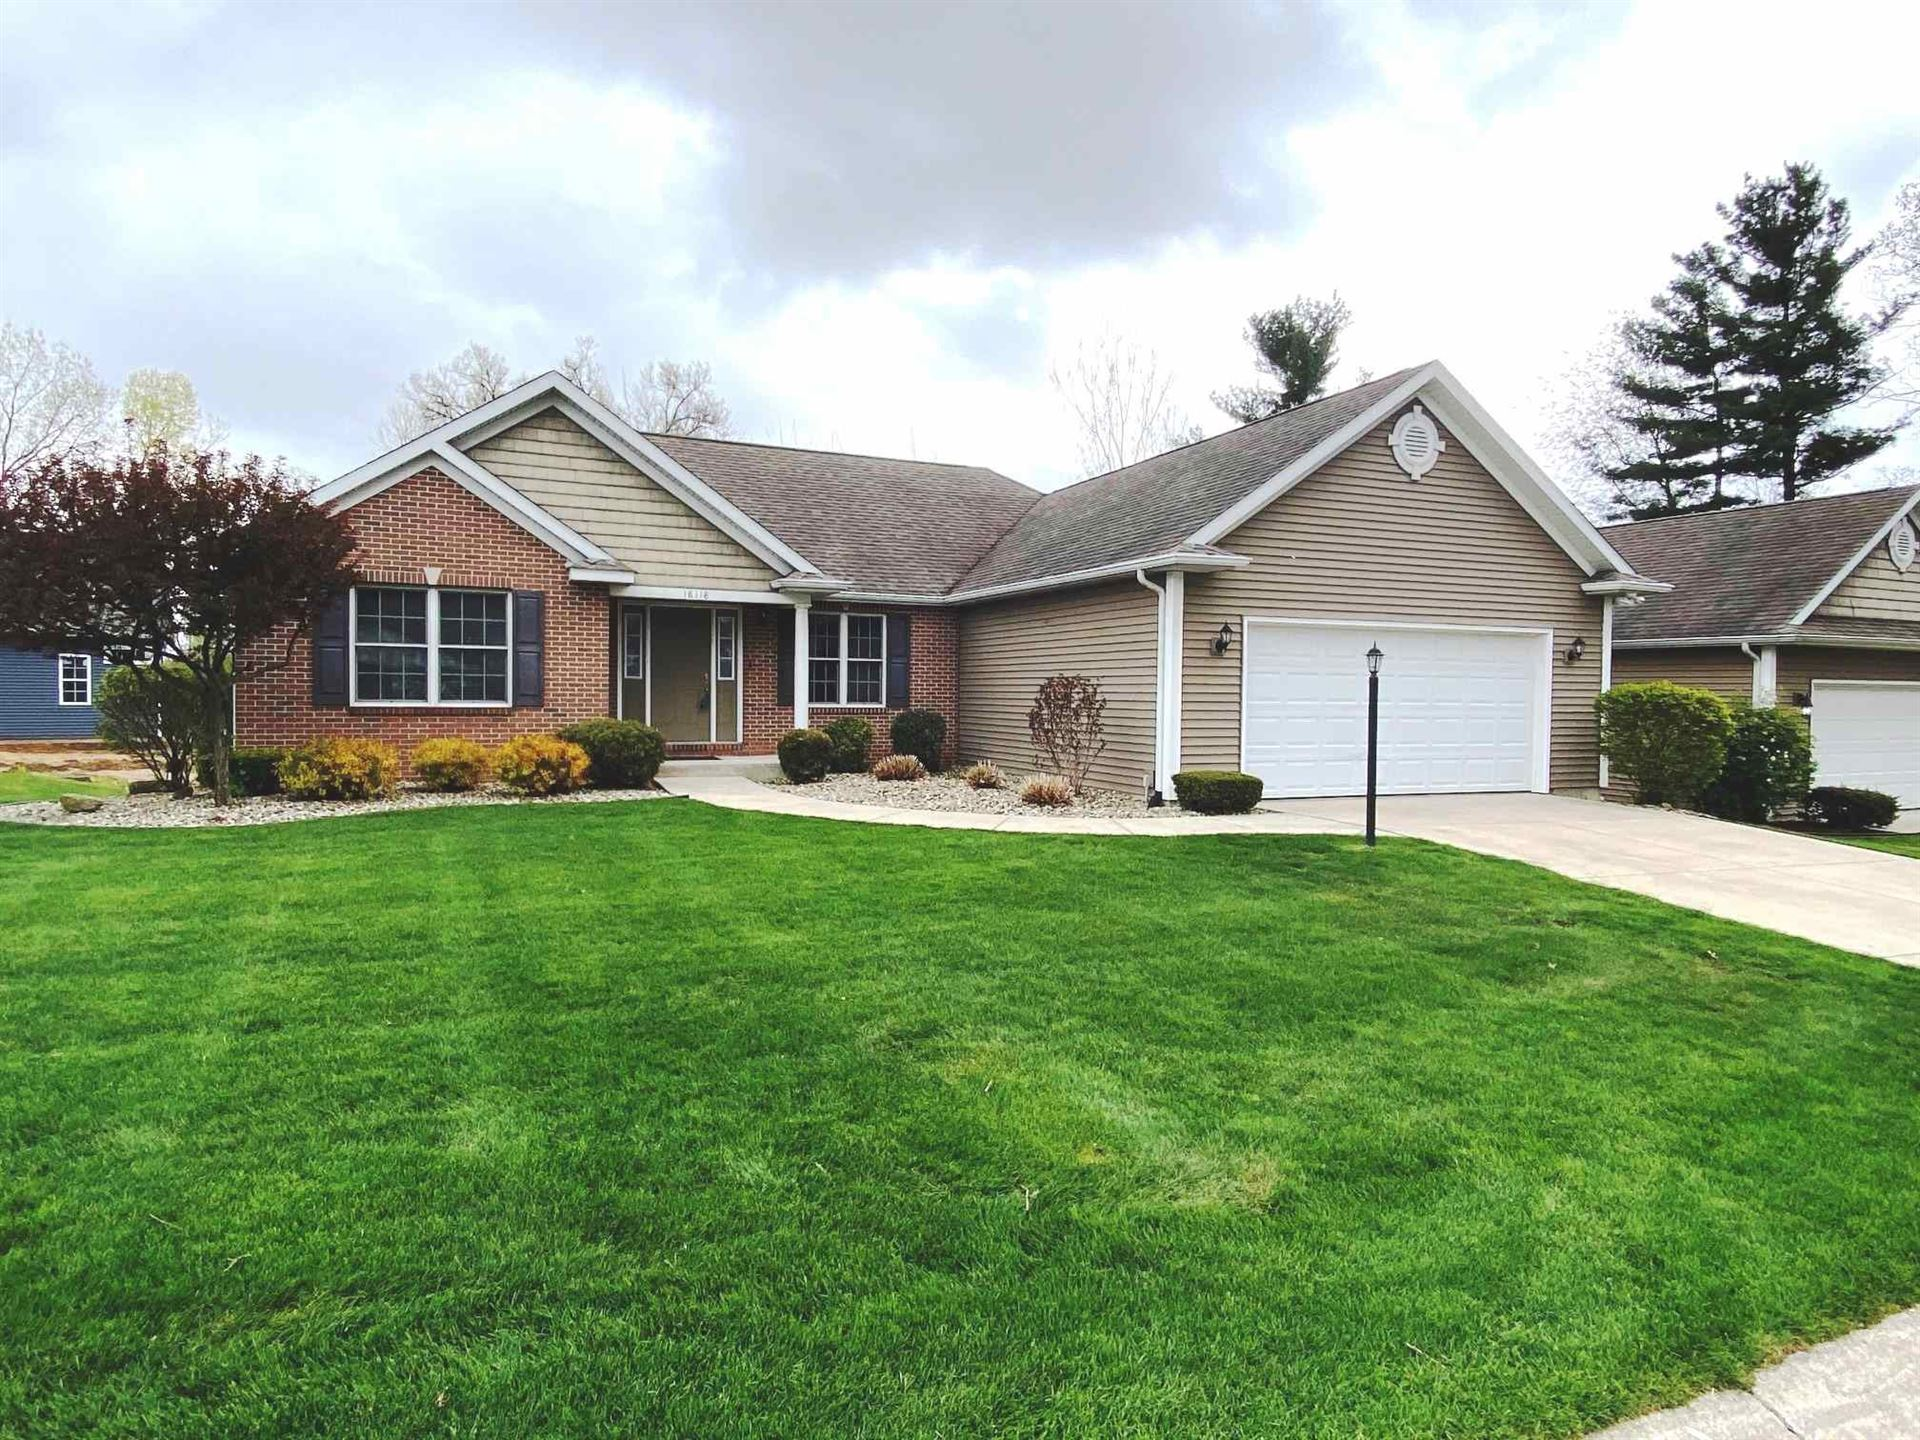 18118 Stoneridge Street, South Bend, IN 46637 - #: 202003706